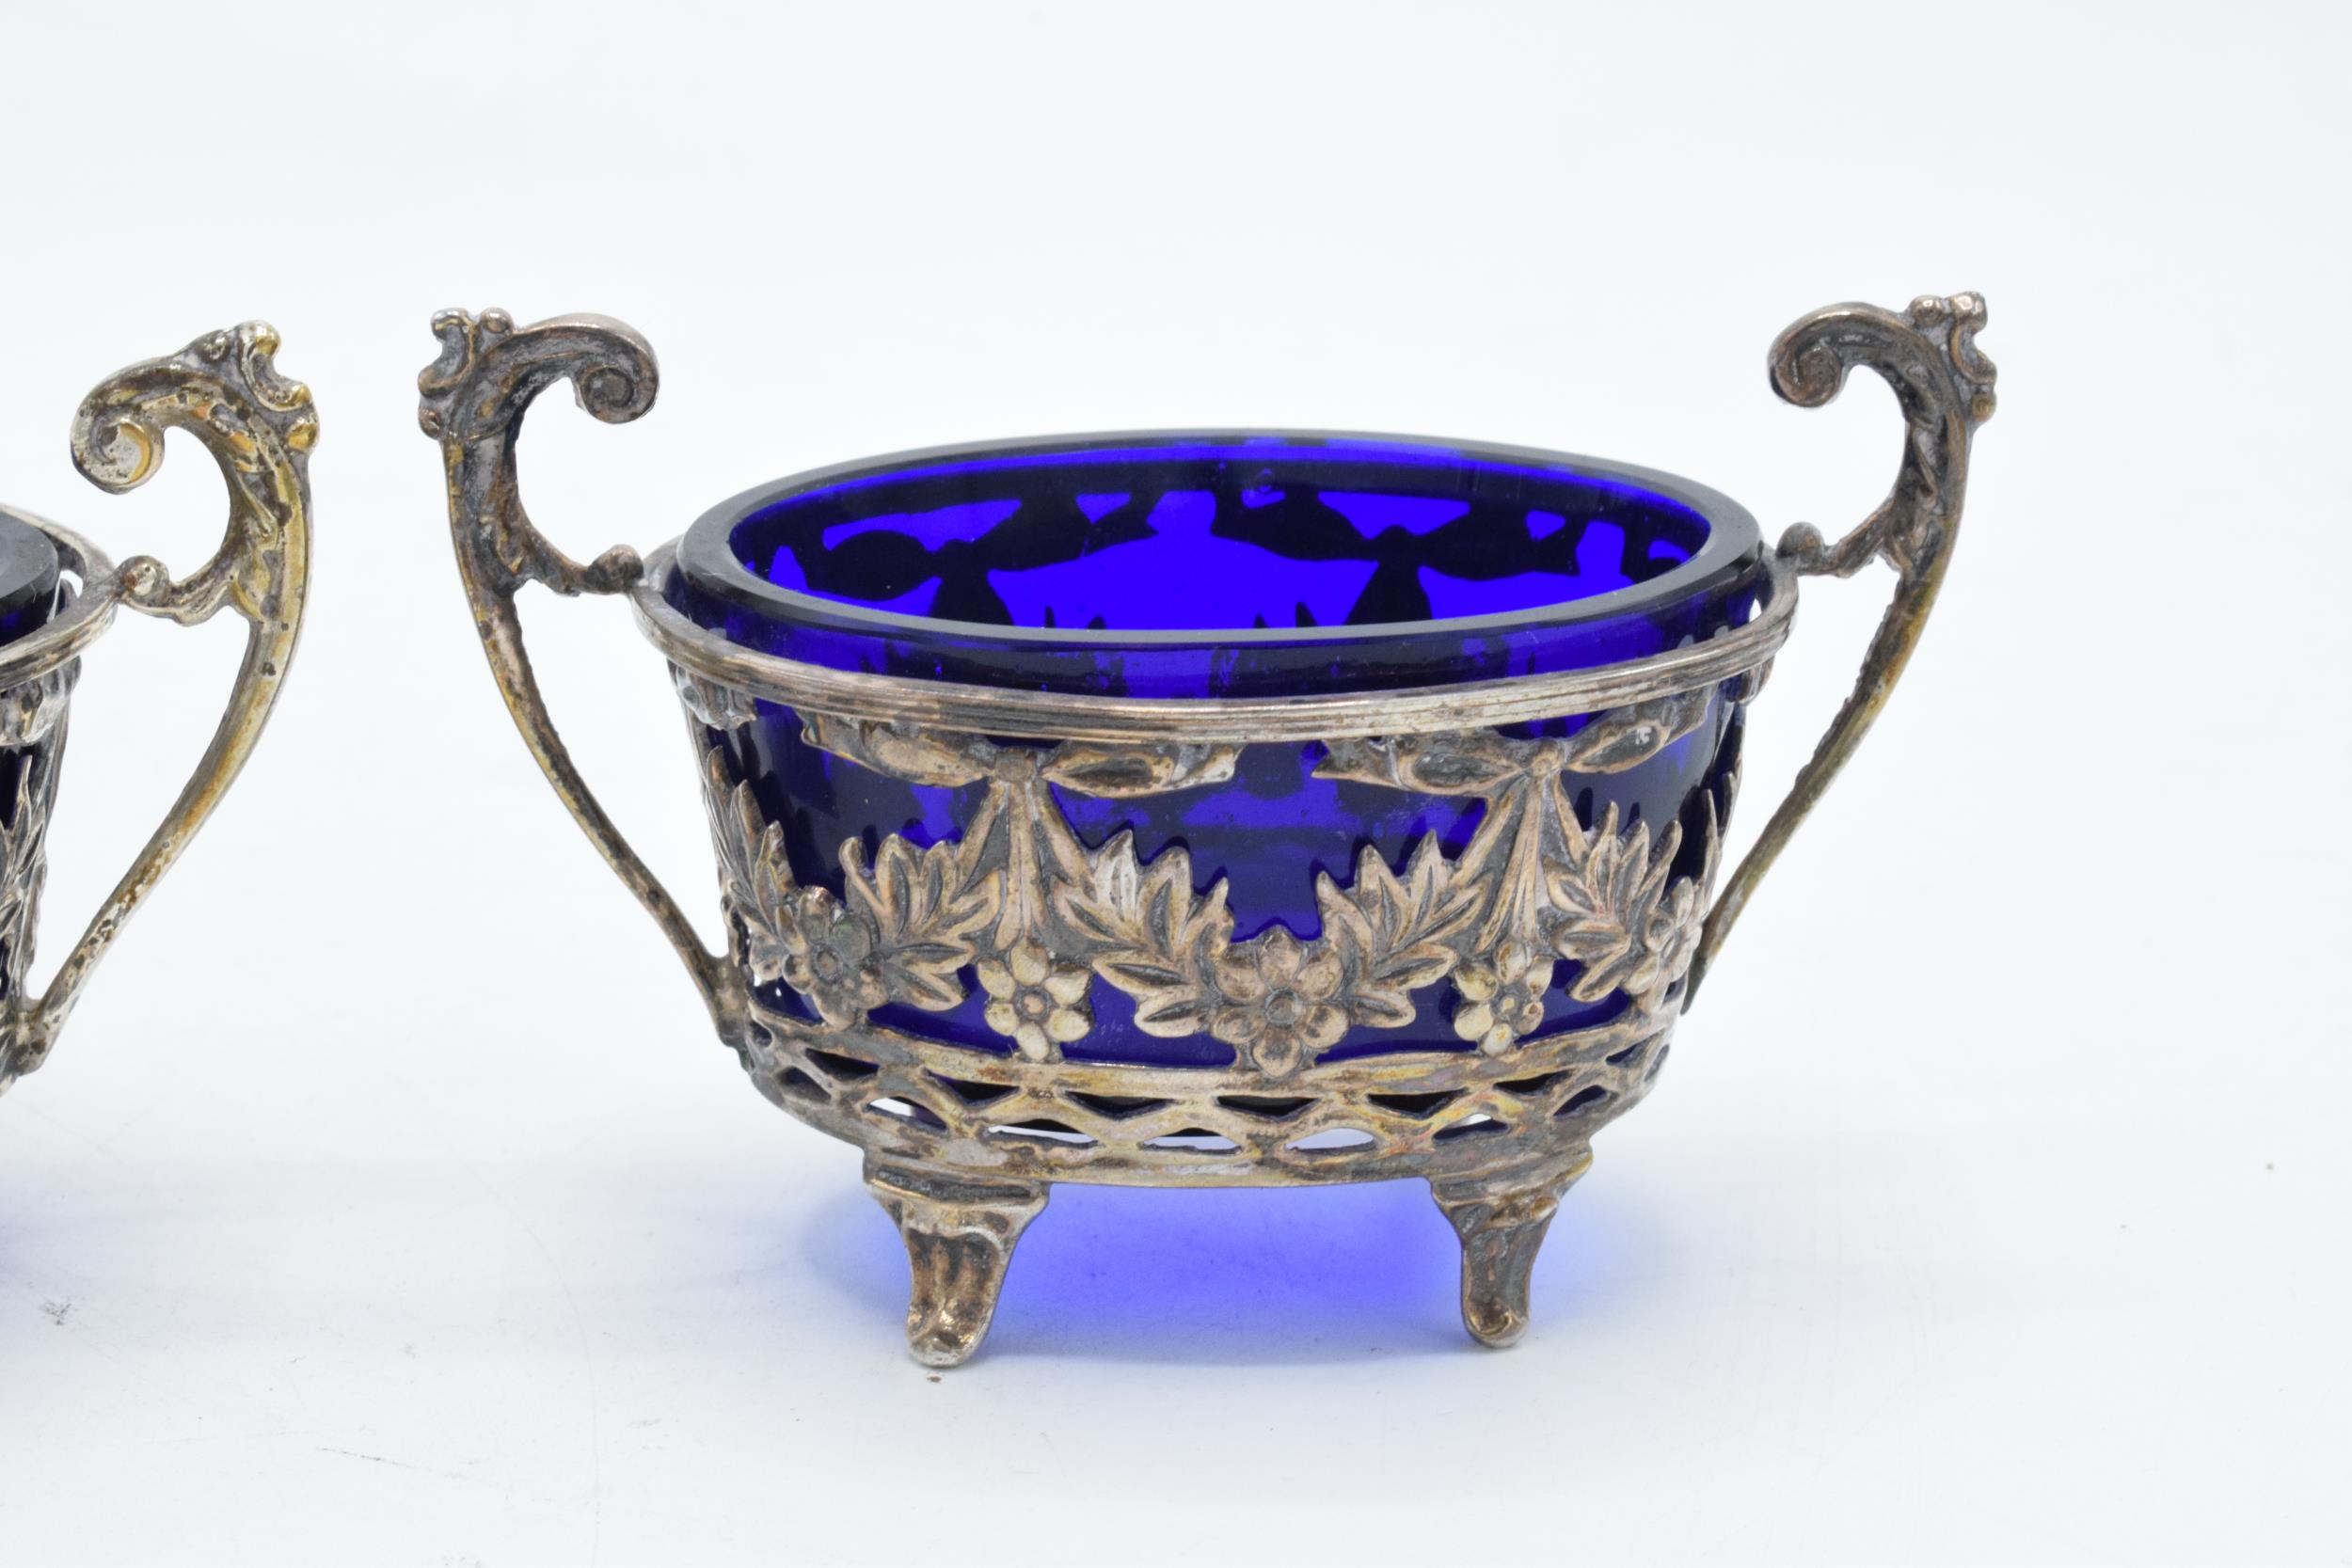 A pair of silver table salts with associated blue glass liners (2). Chester 1894. 101.3 grams of - Image 3 of 6